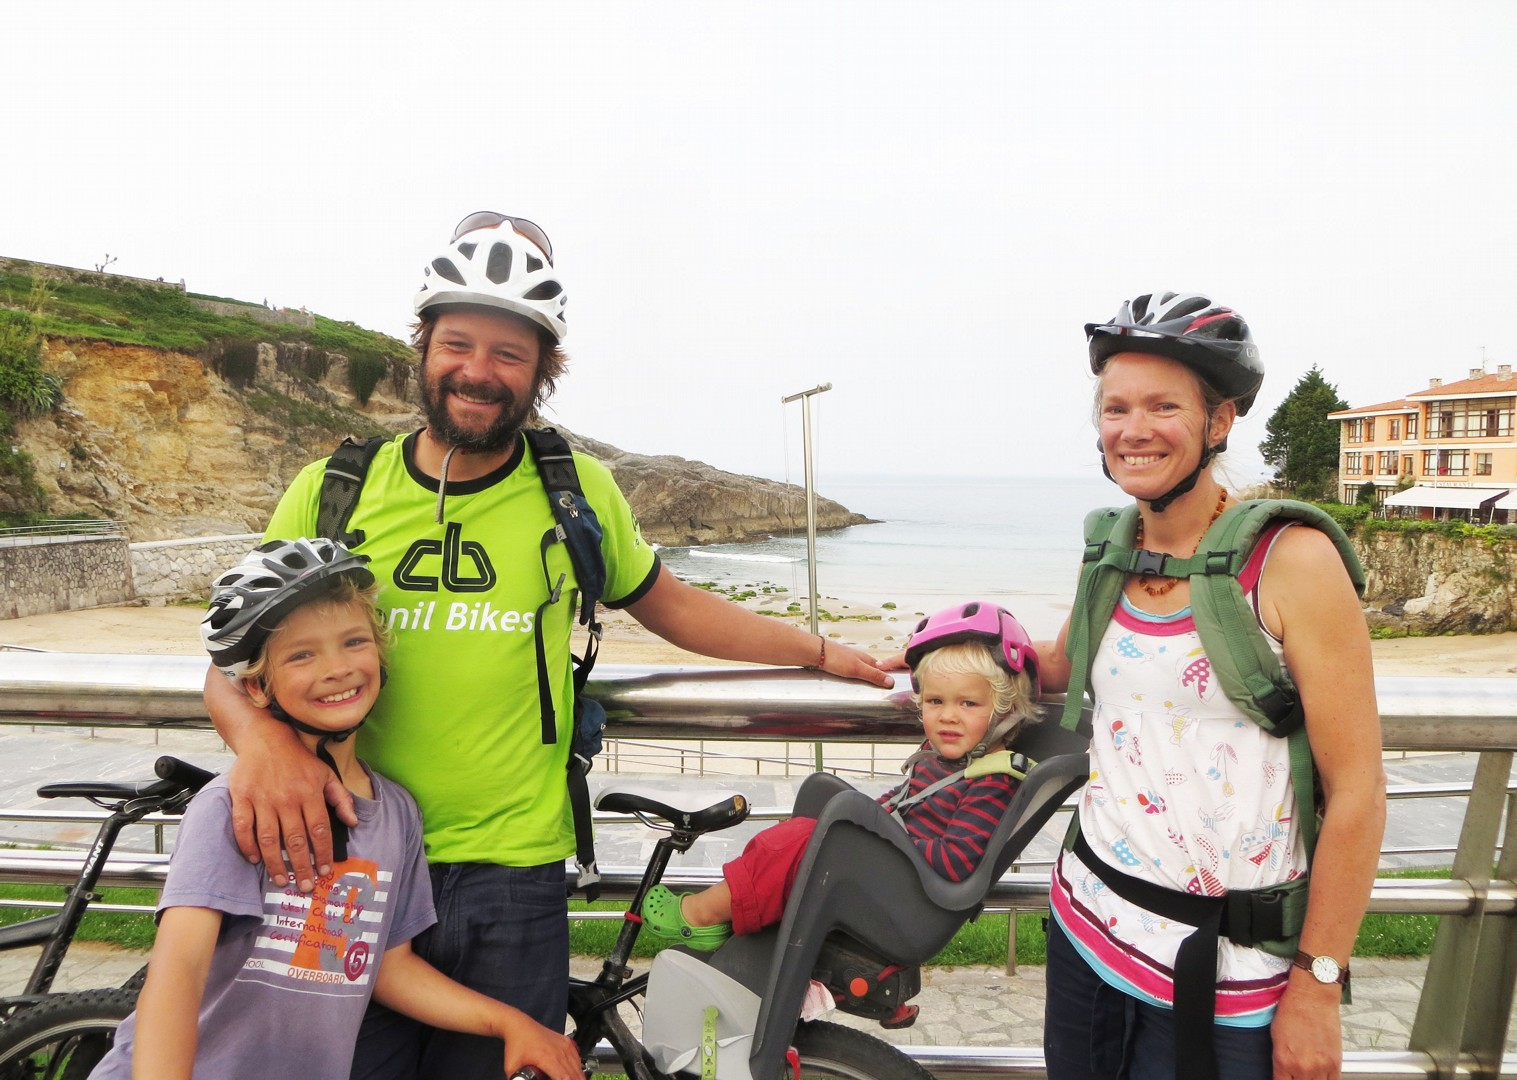 self-guided-family-cycling-holiday-in-spain-family.jpg - Northern Spain - Asturian Coastal Ride - Self-Guided Family Cycling Holiday - Family Cycling